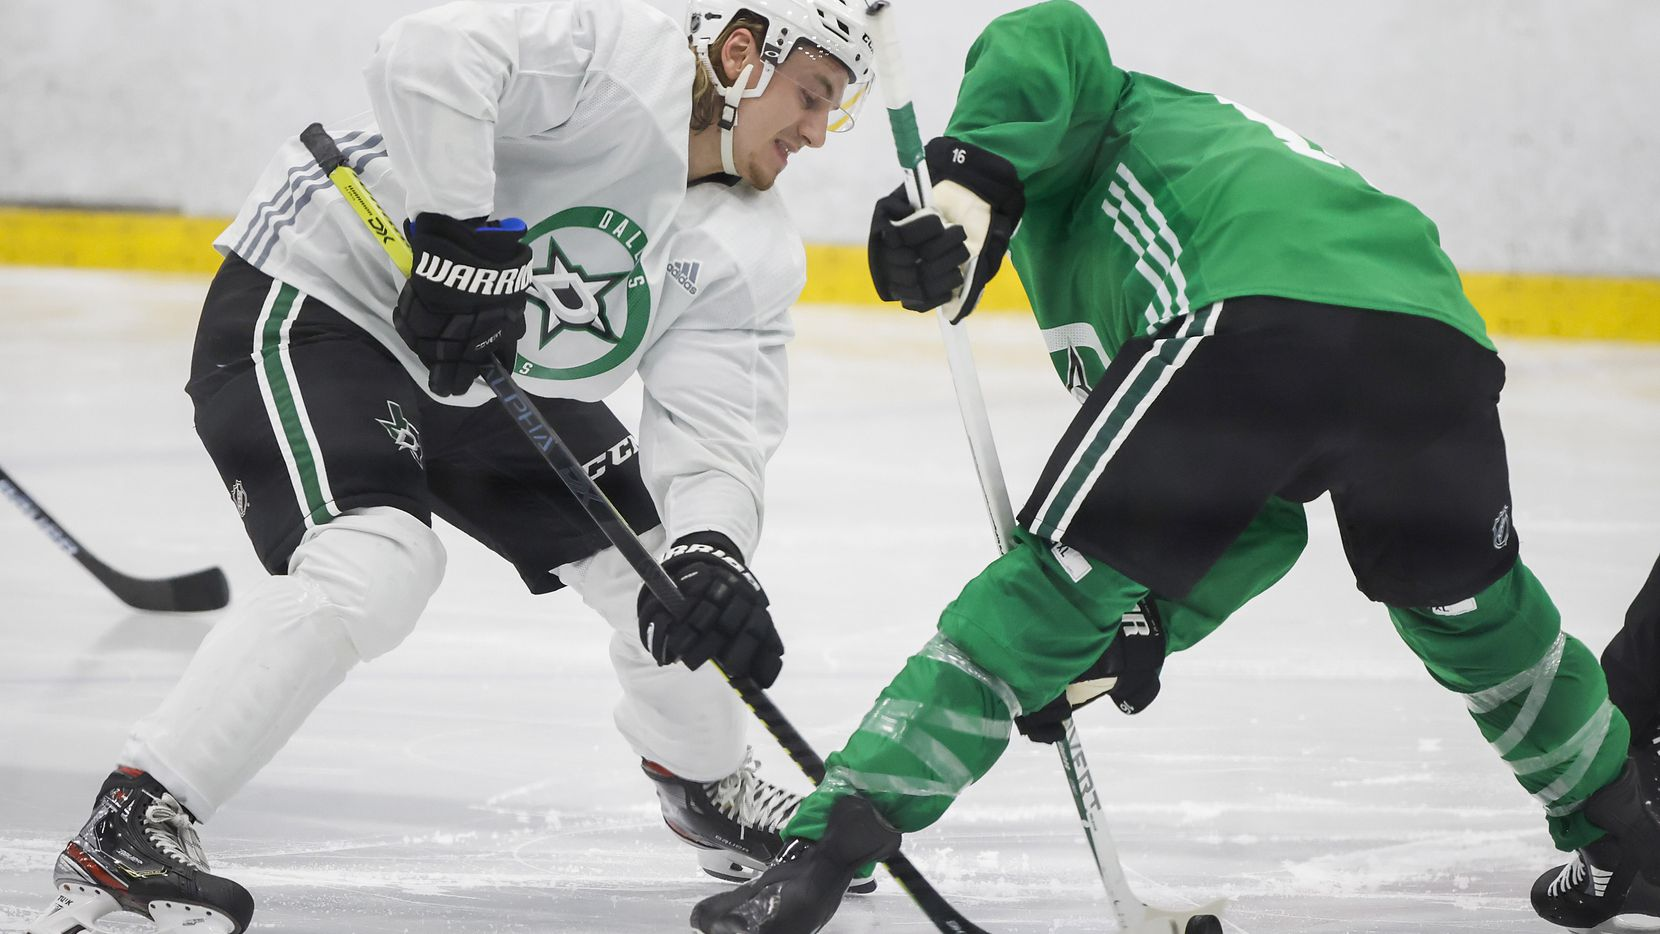 Dallas Stars centers Roope Hintz (left) and Joe Pavelski (right) set up for a face off during a training camp practice at the Comerica Center on Wednesday, Jan. 6, 2021, in Frisco.